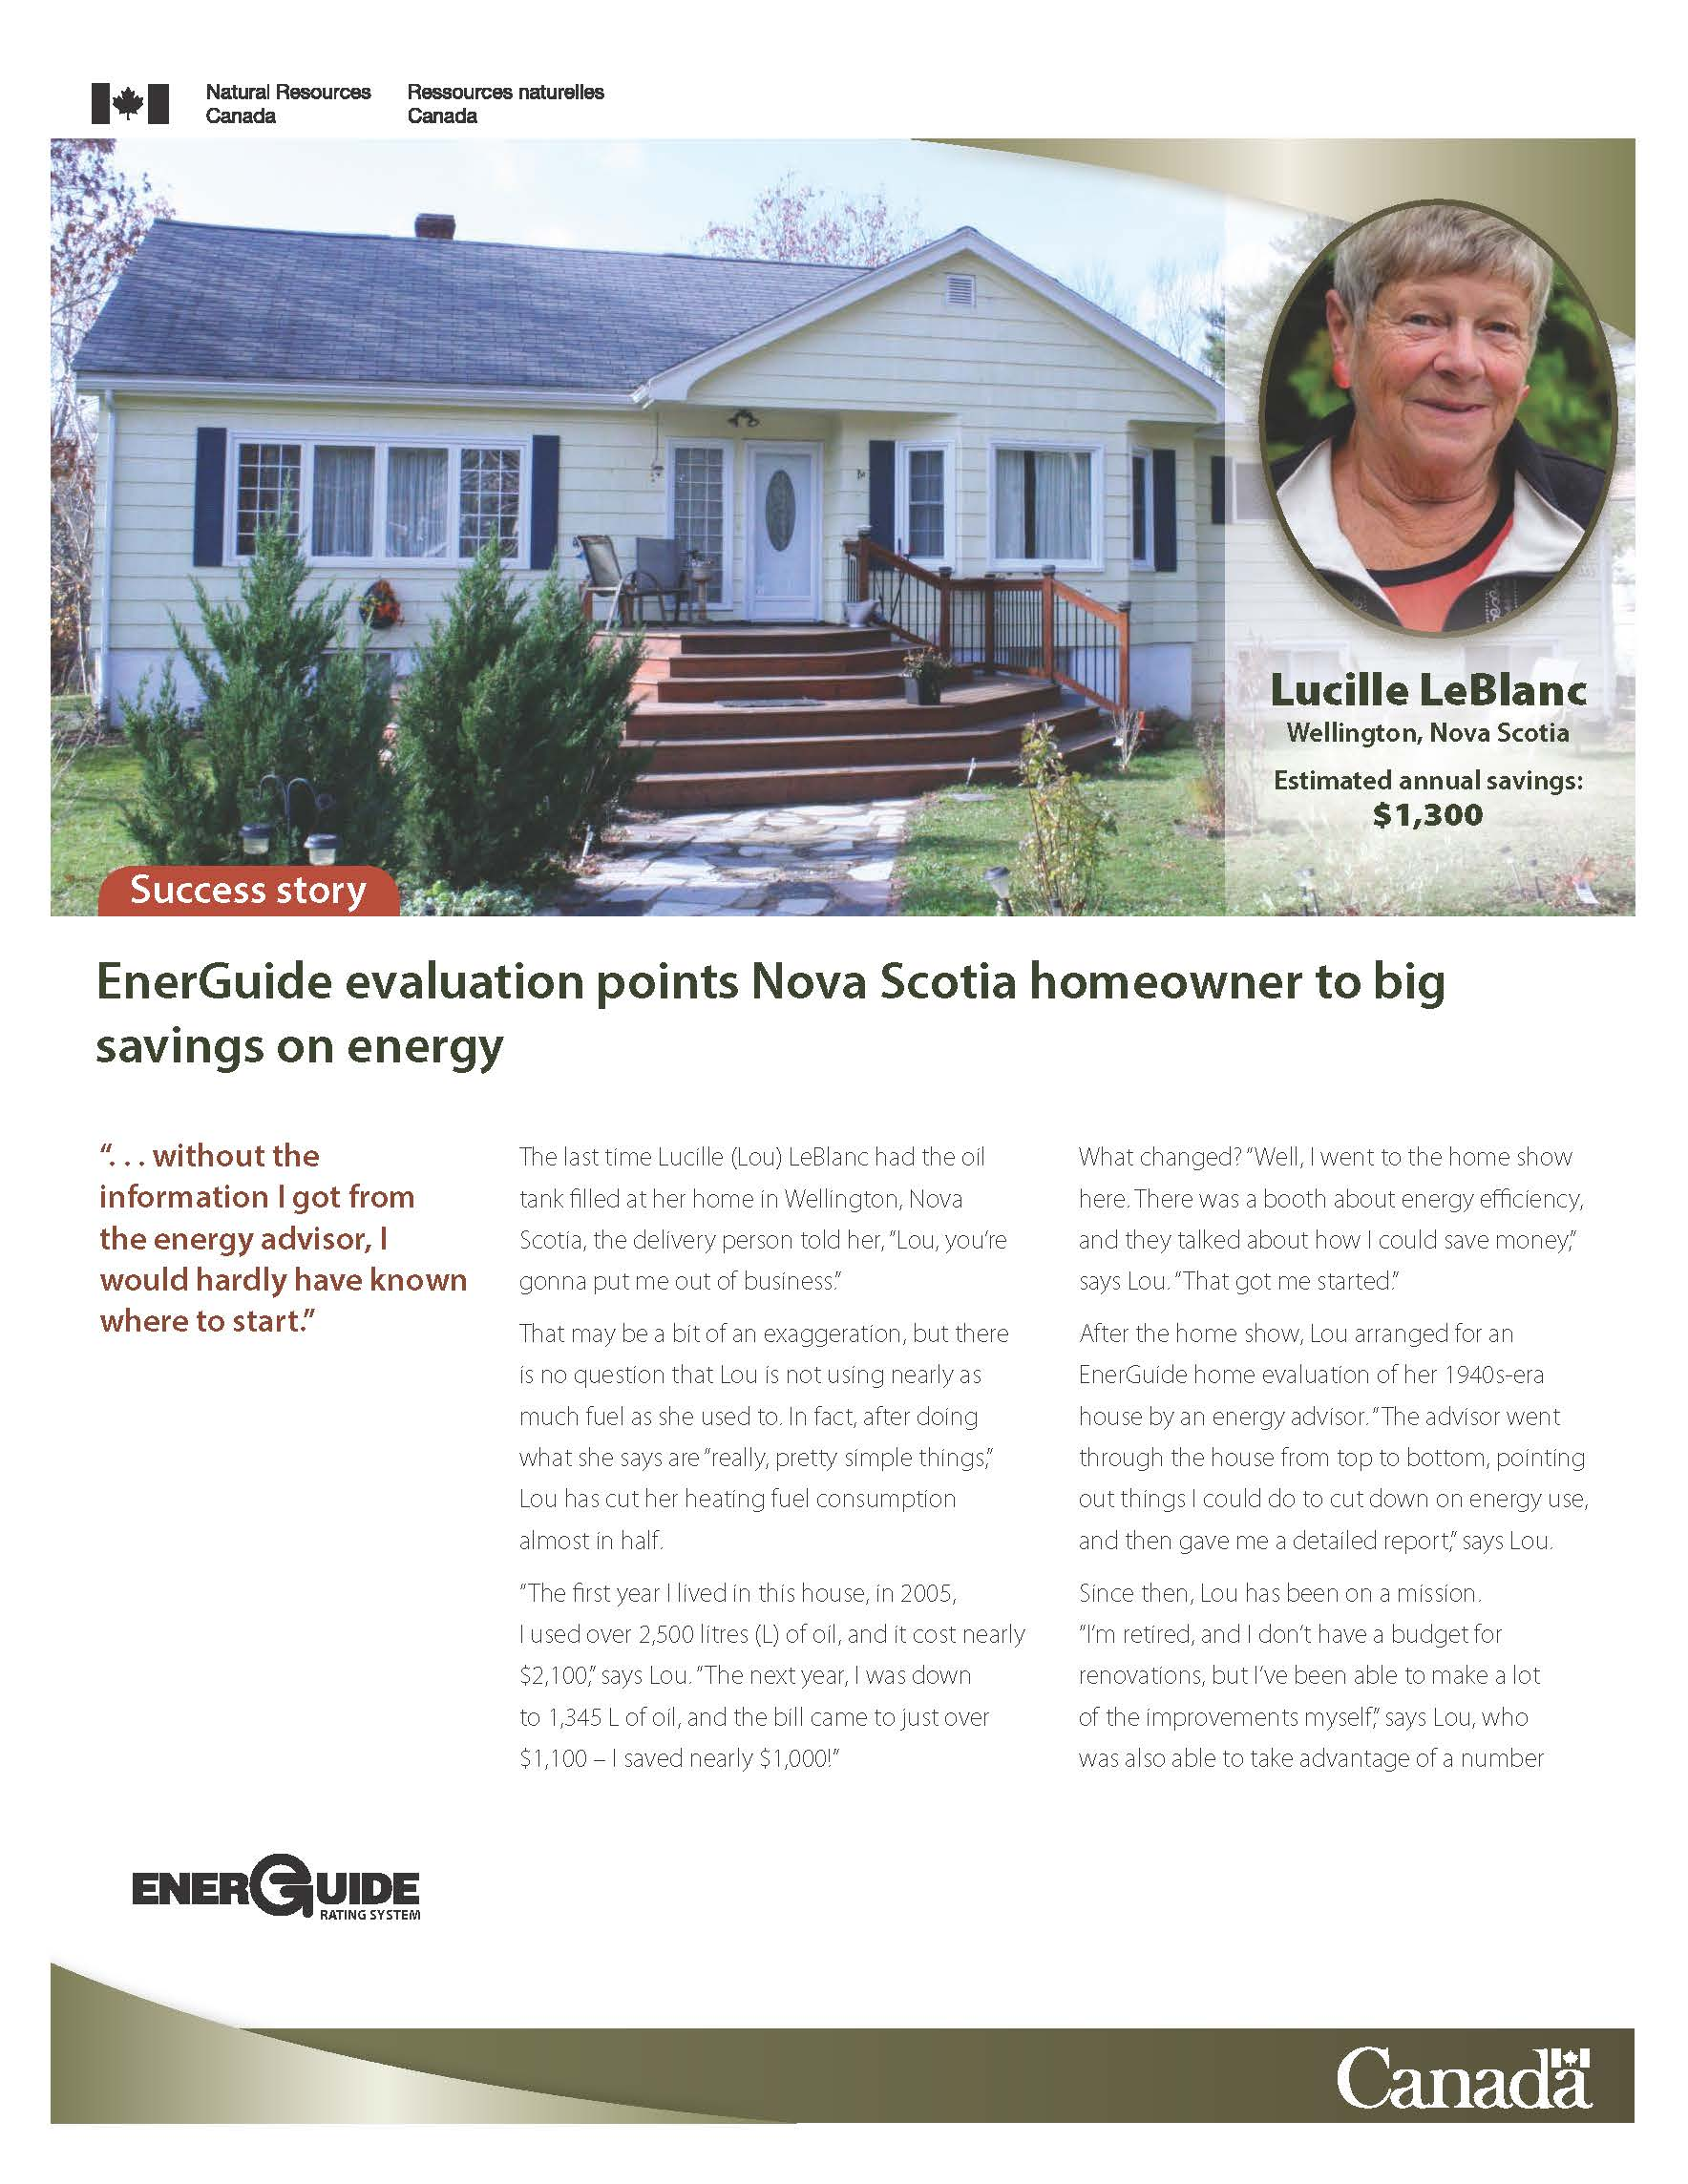 EnerGuide evaluation points Wellington, Nova Scotia homeowner to big savings on energy